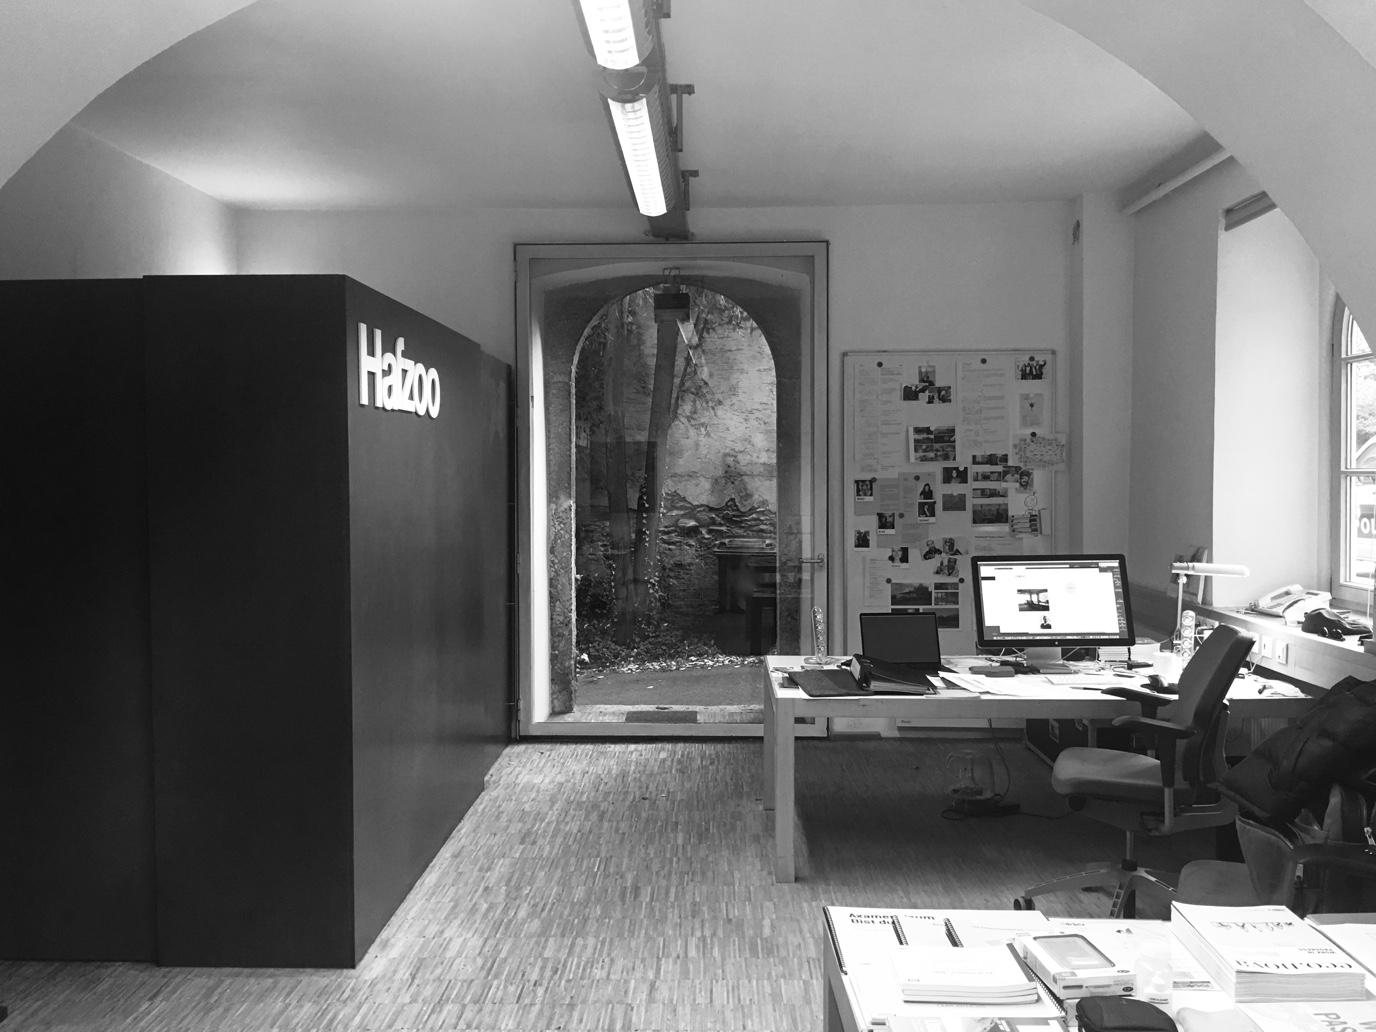 Hafzoo: Office